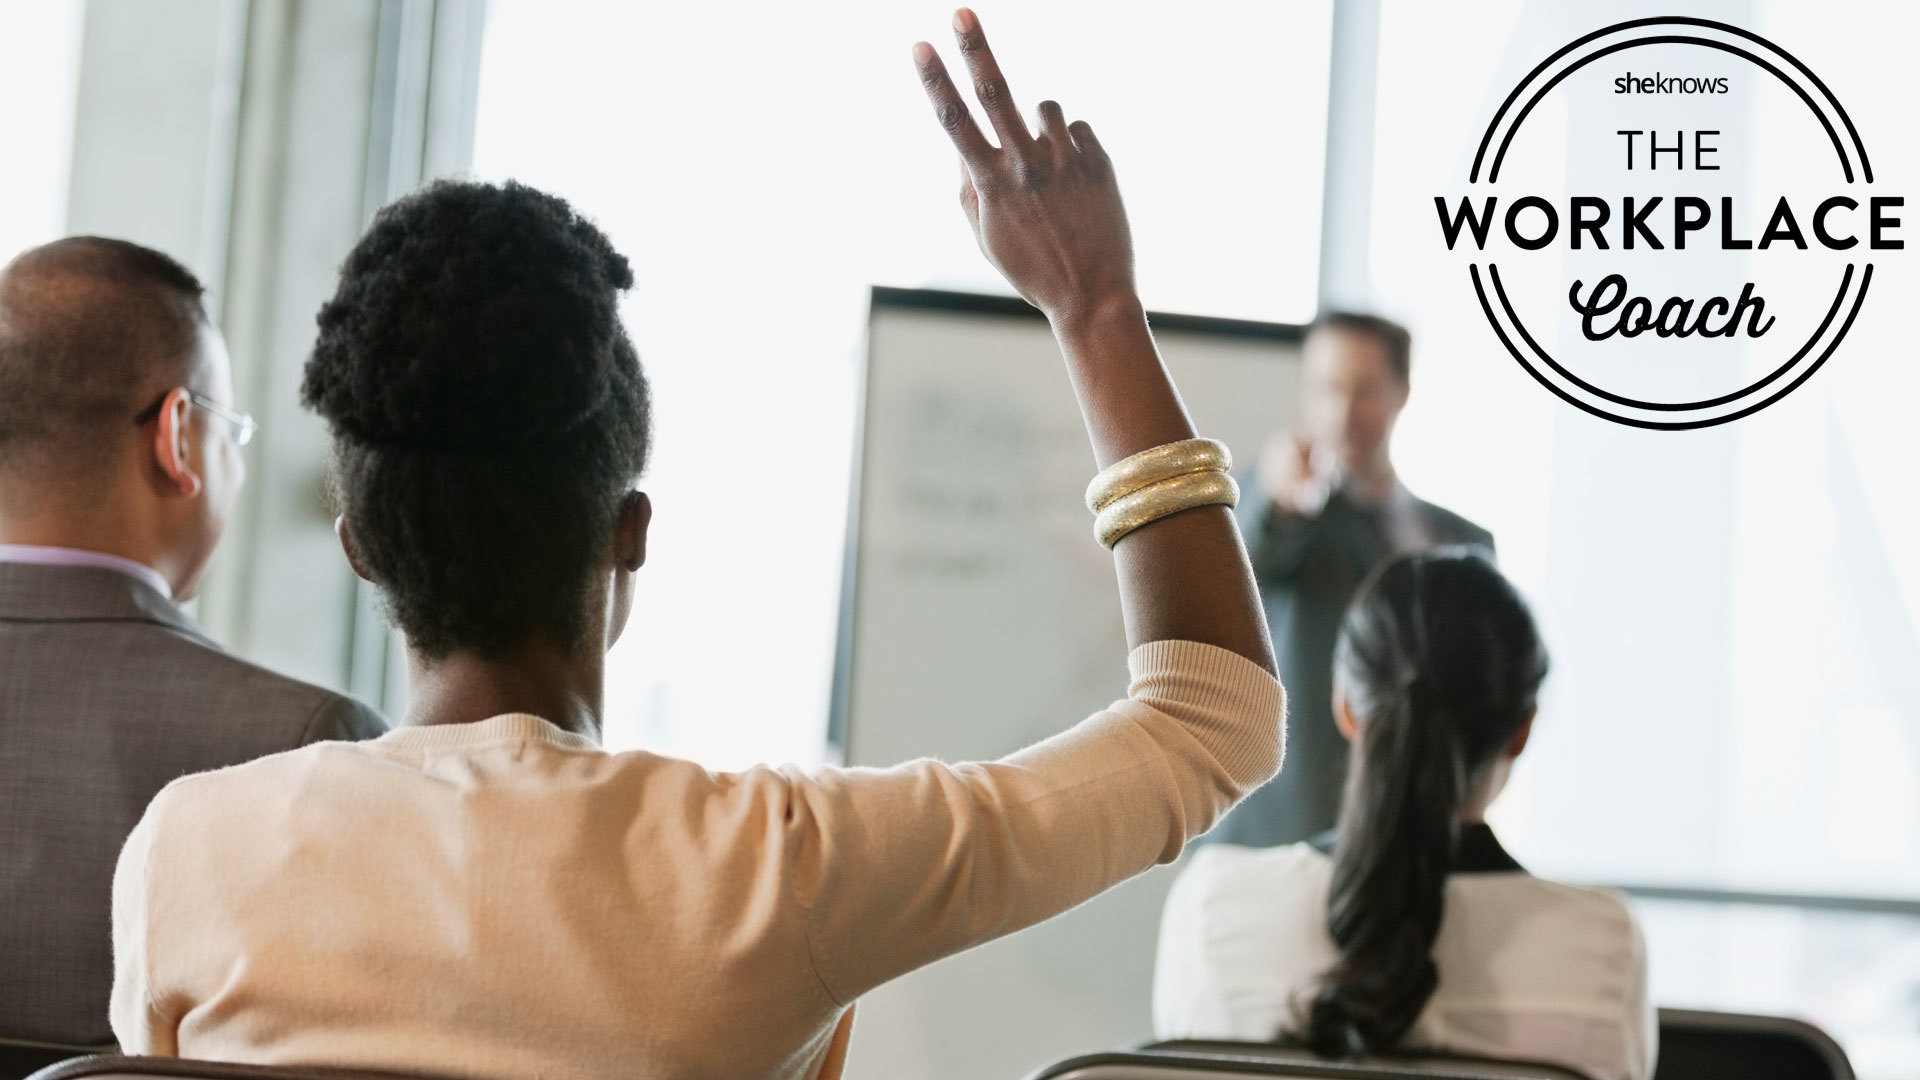 How do I handle a coworker who is making me look bad? – SheKnows